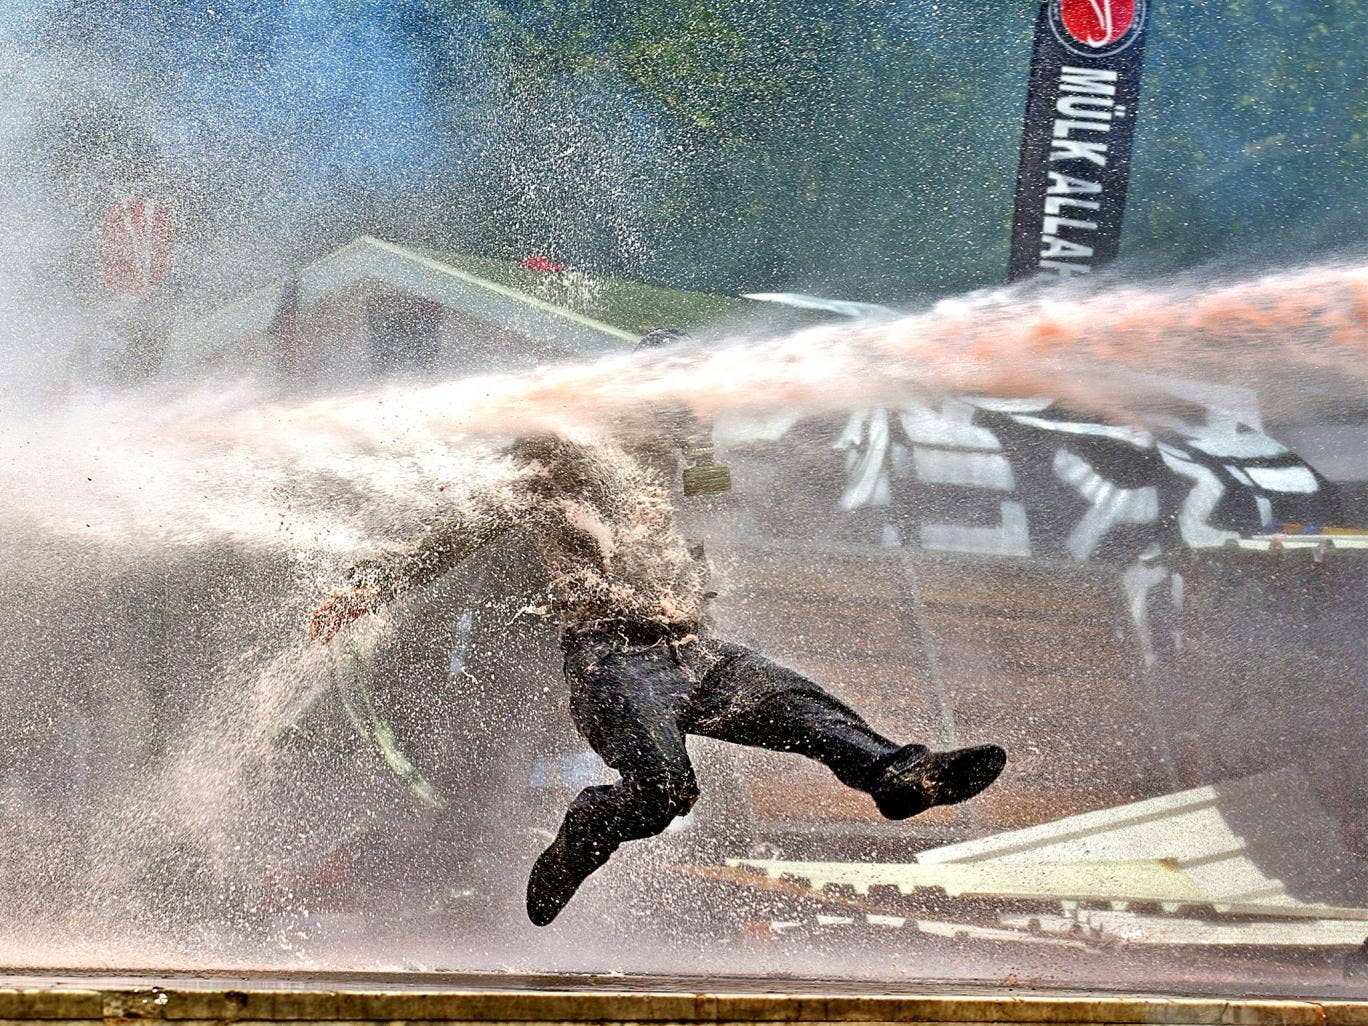 A protestor is hit by water sprayed from a water cannon during clashes in Taksim Square